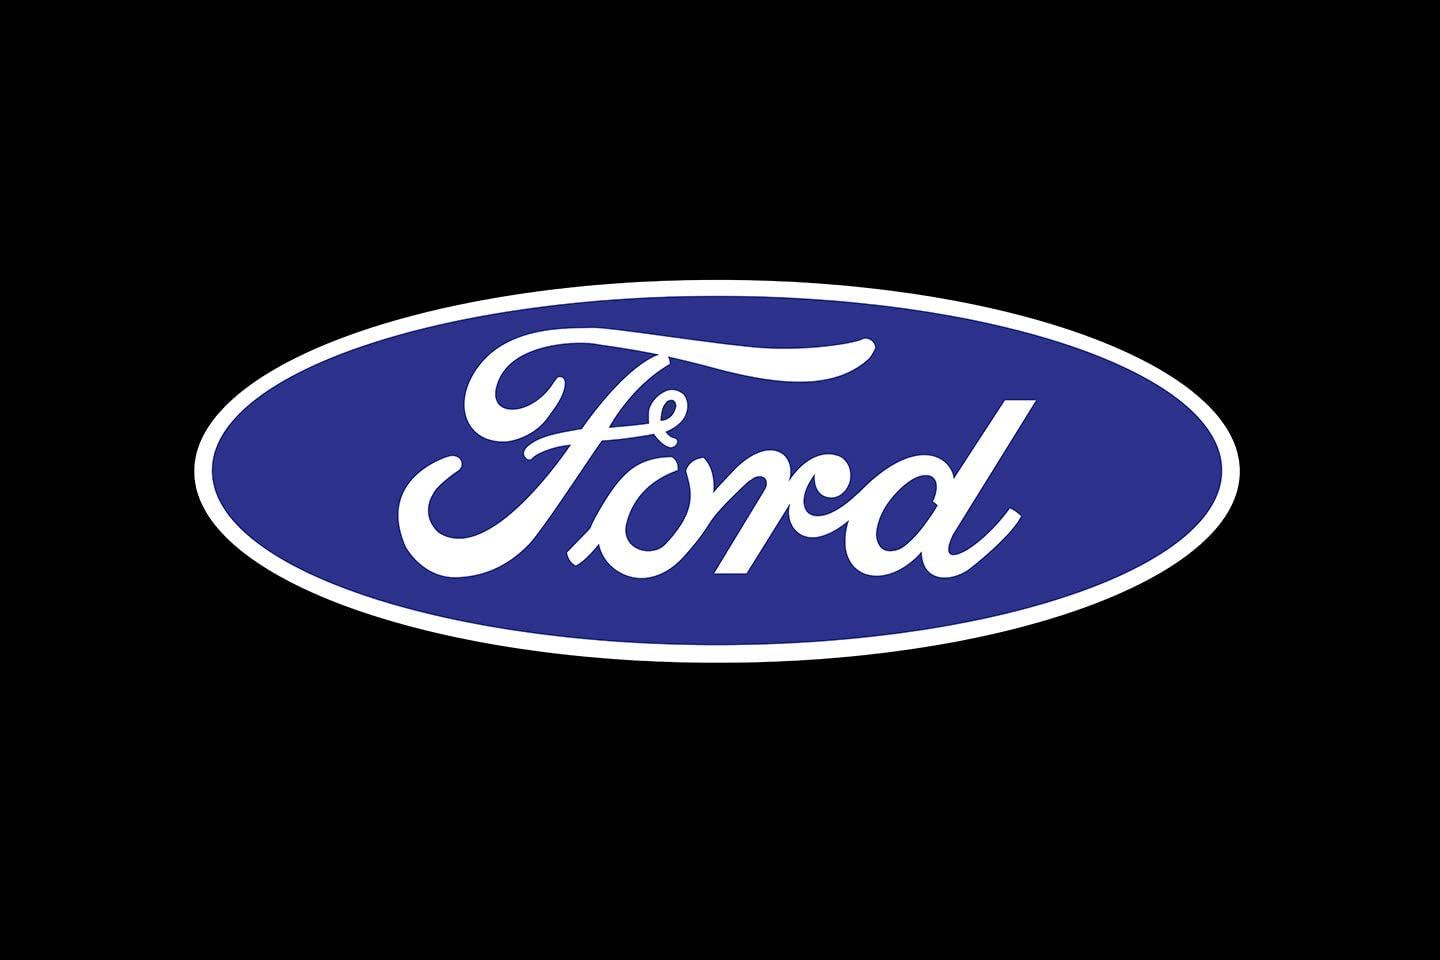 Officially Licensed by Ford Motor Compnay Universal Fit ELFG2504 Extra Long Size 22 X 45 Fender Gripper Fender Cover with Ford Blue Oval